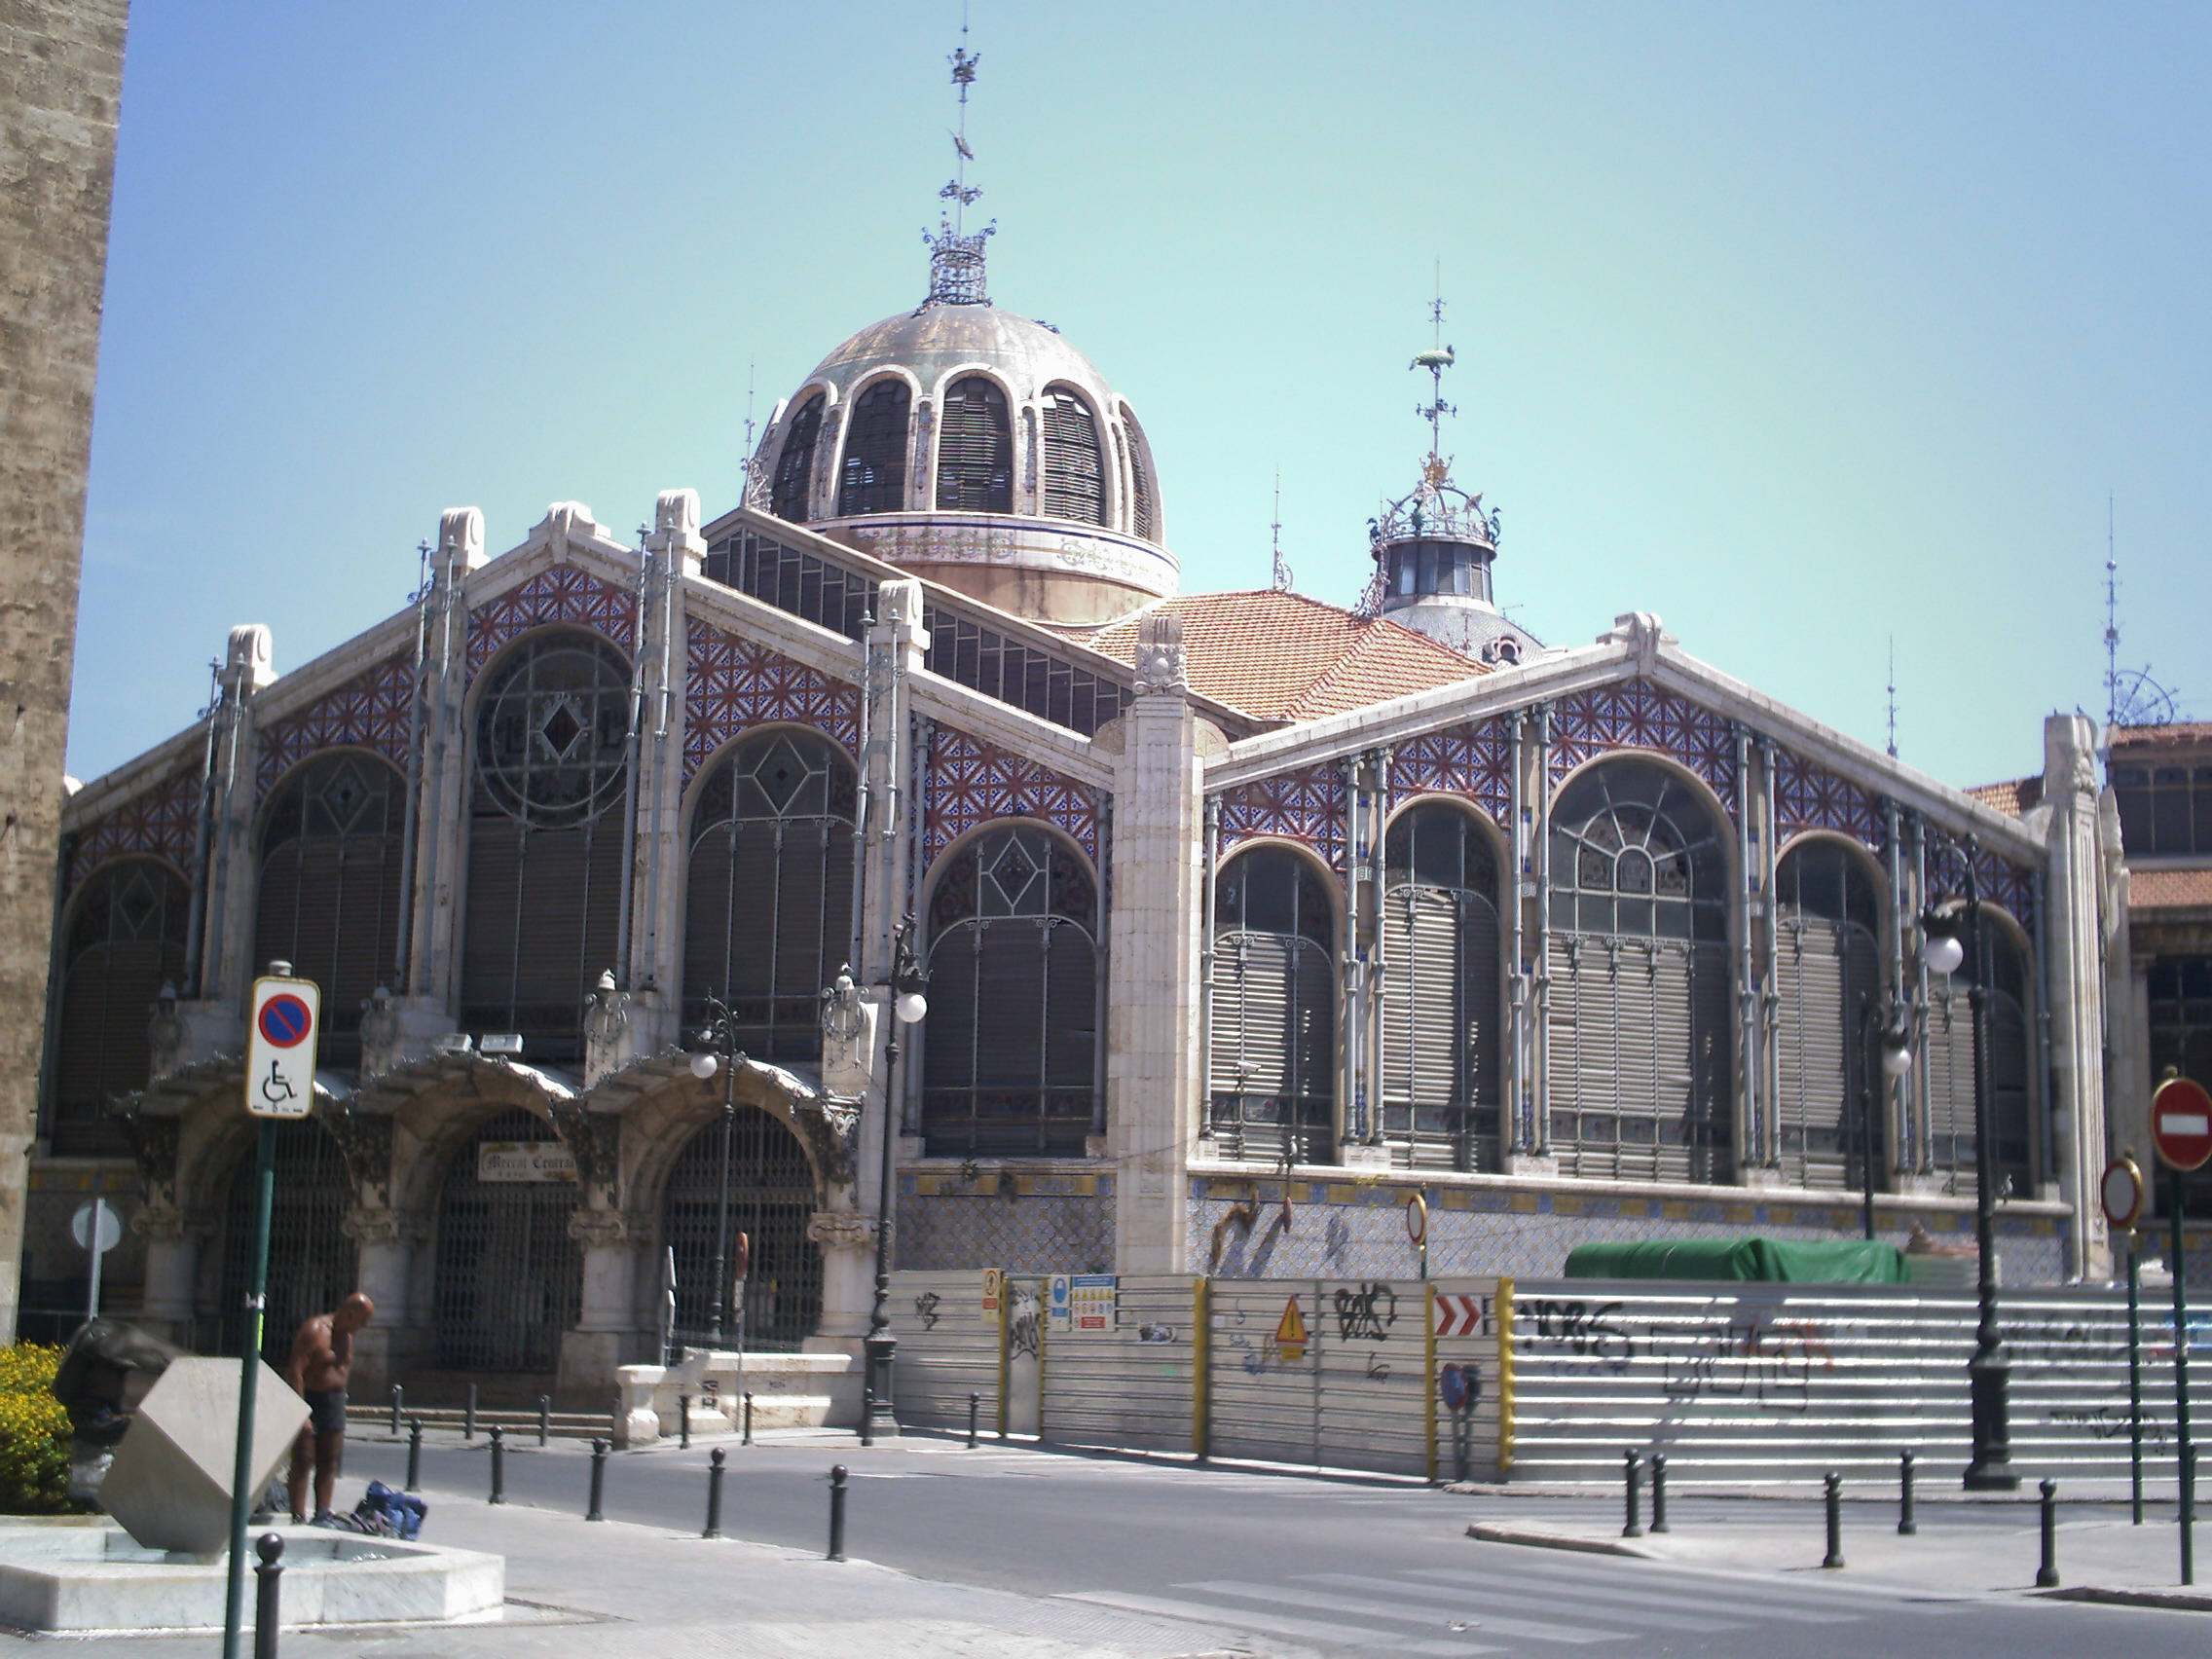 File:Mercado Central de Valencia1.JPG - Wikimedia Commons